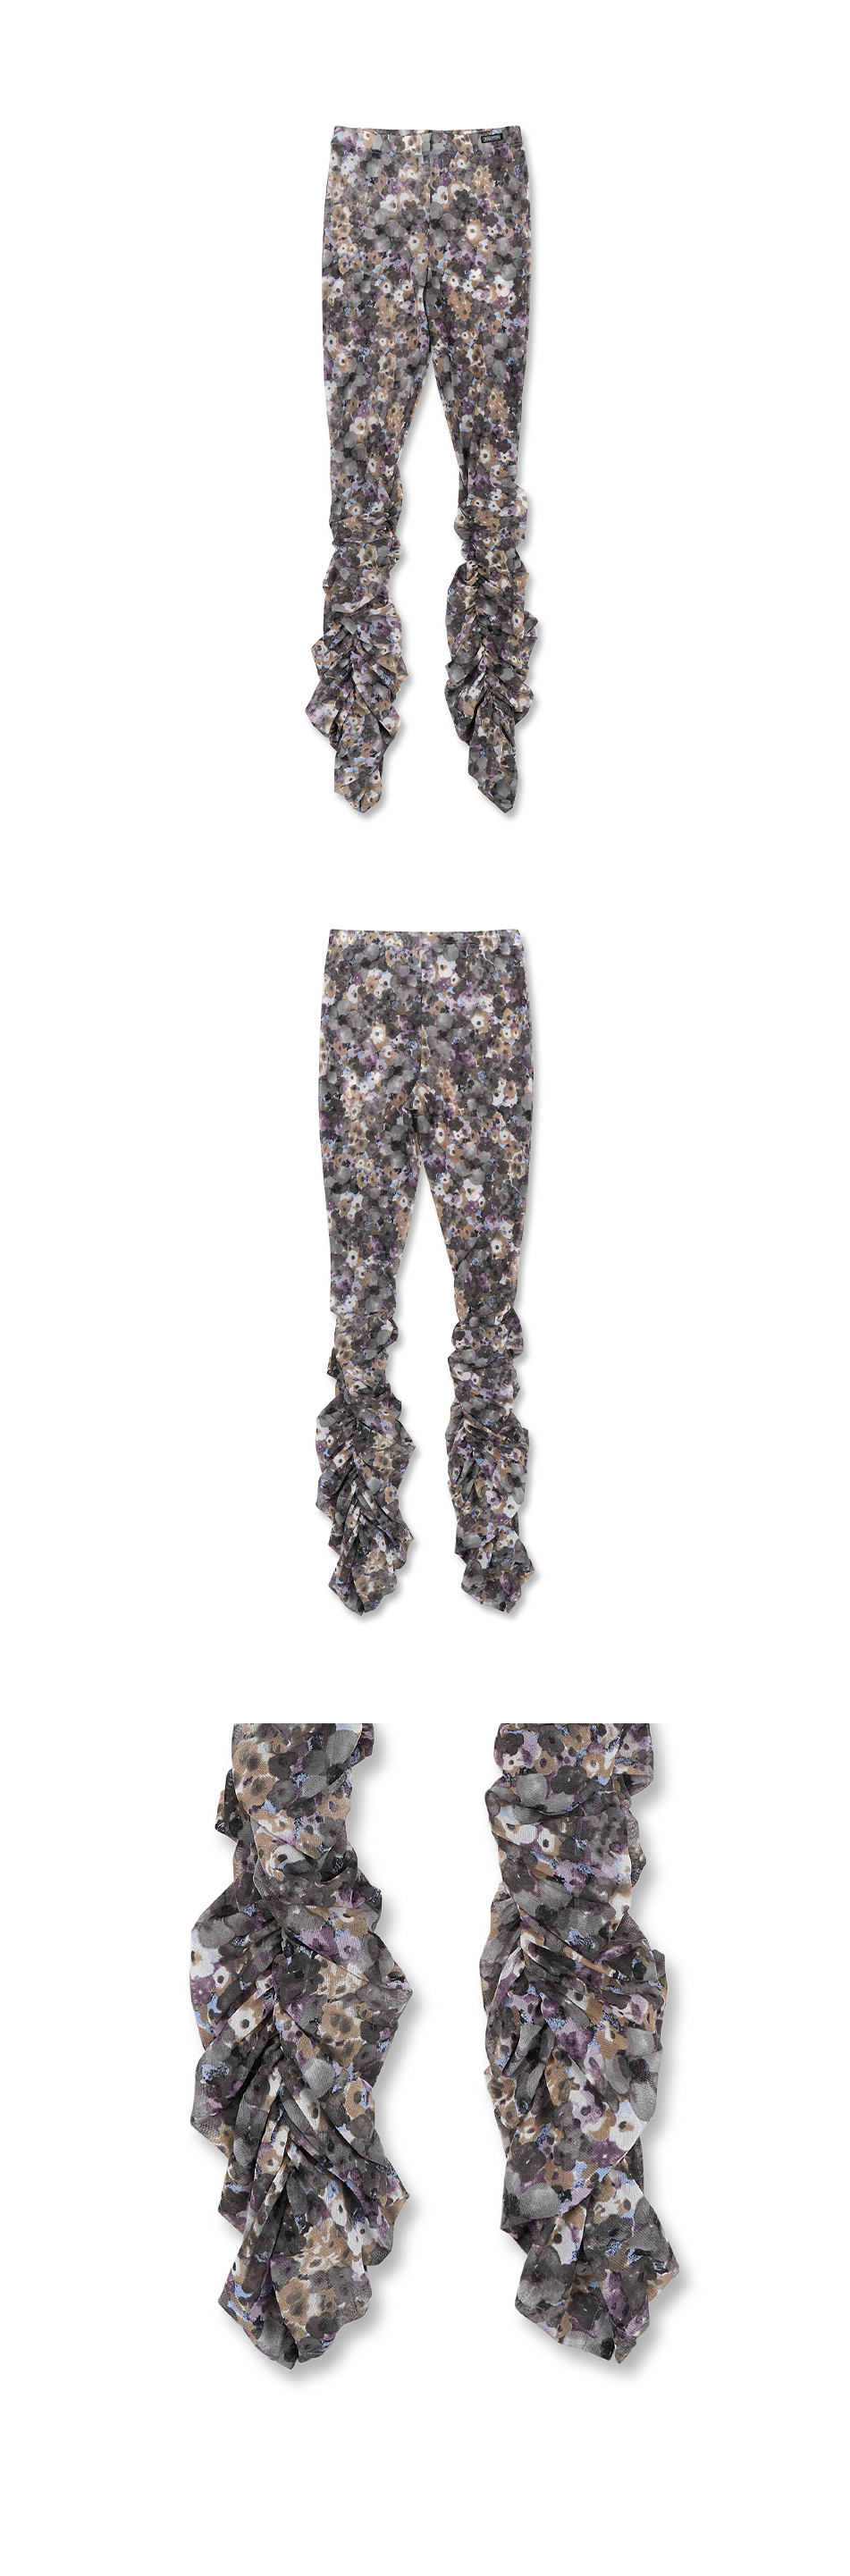 스컬프터(SCULPTOR) Shirring Flower Mesh Leggings Purple Bouquet